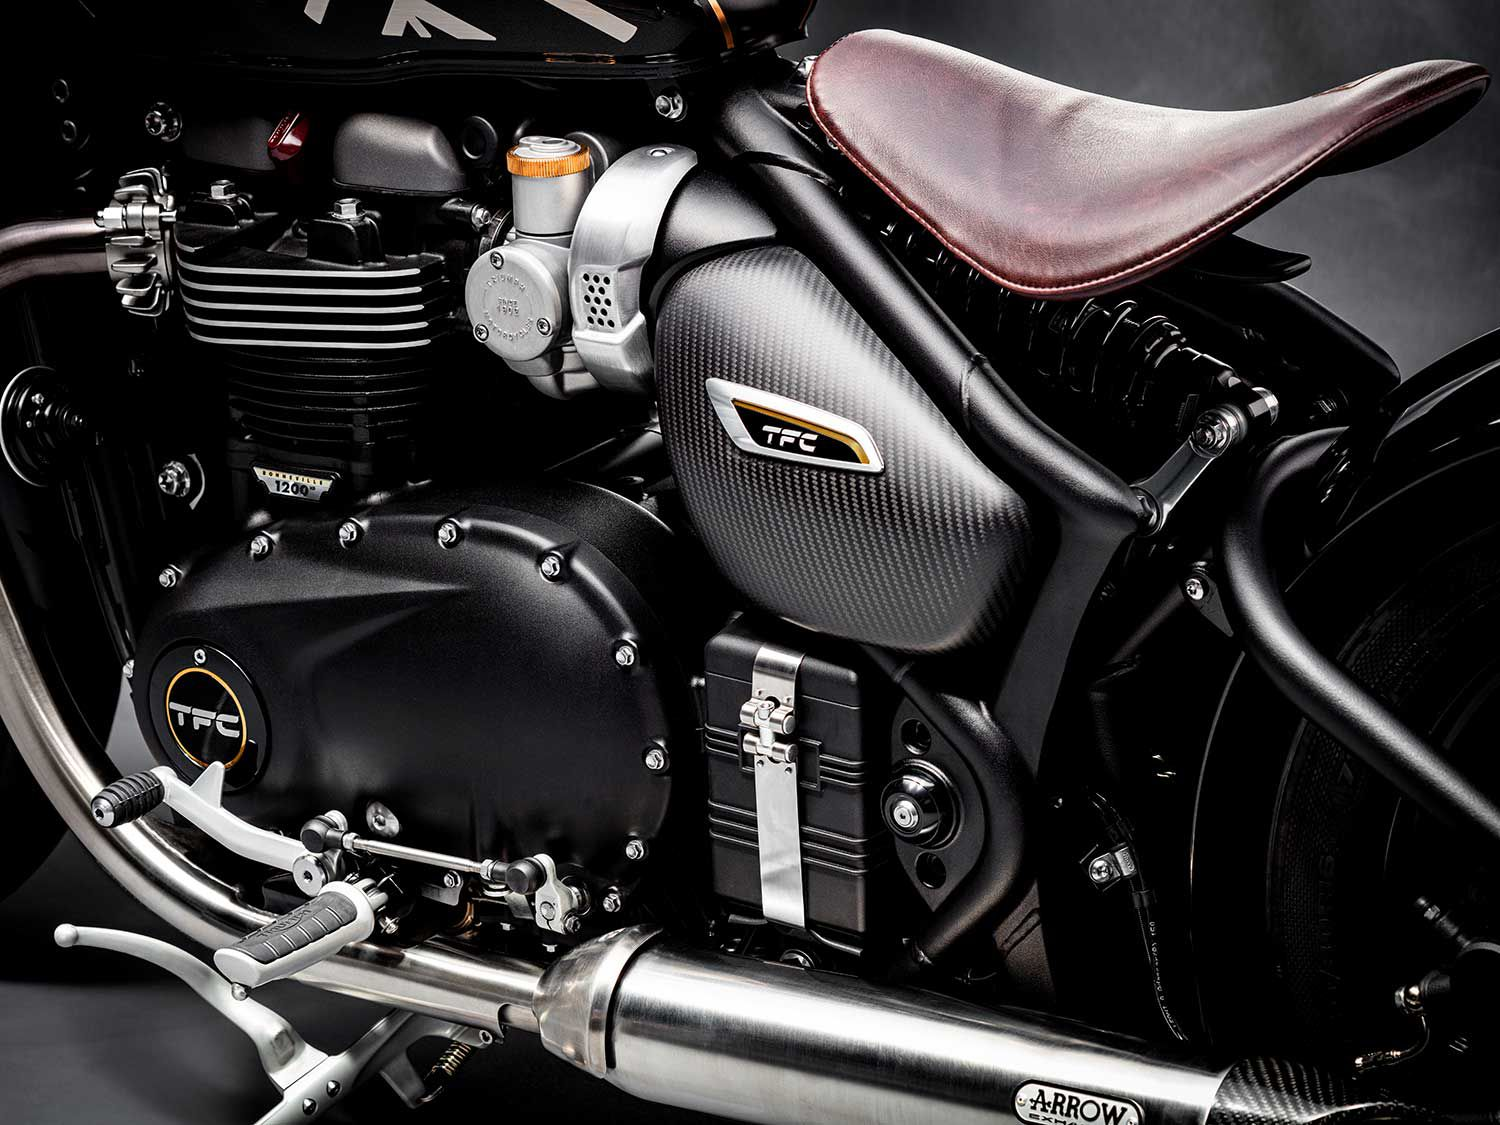 The 1,200cc engine receives a number of lighter parts, and yields more power and torque.